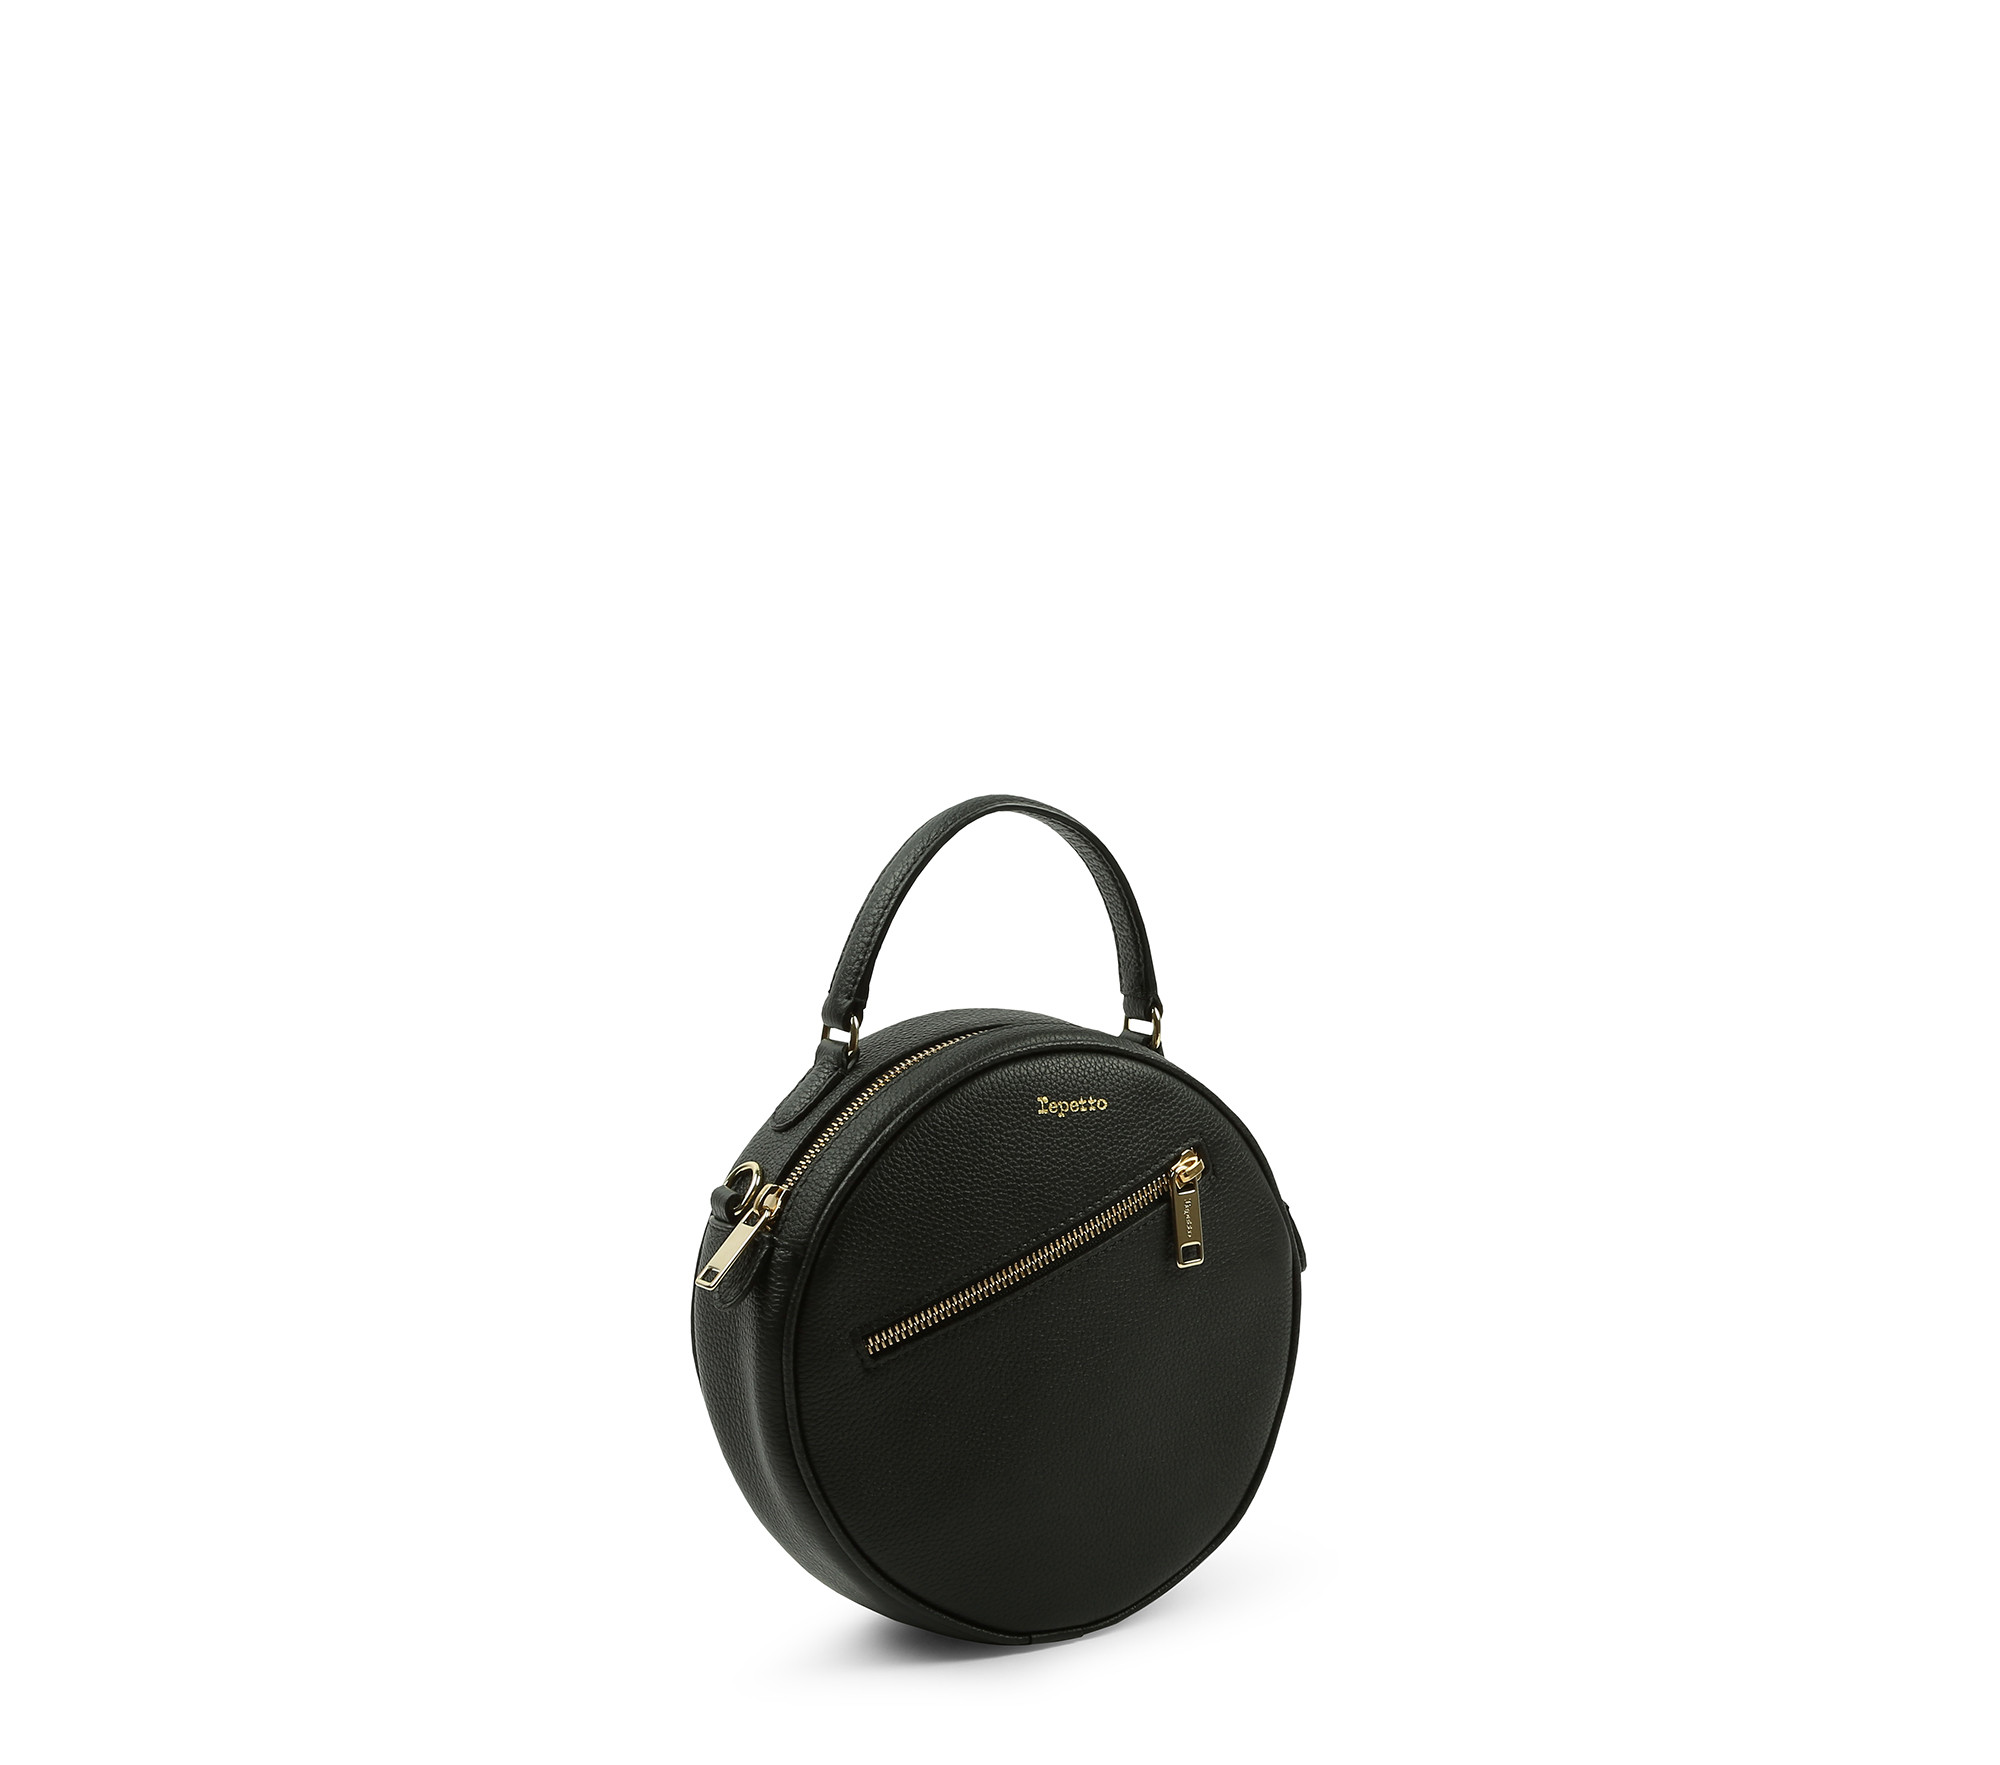 Couronne bag Small size